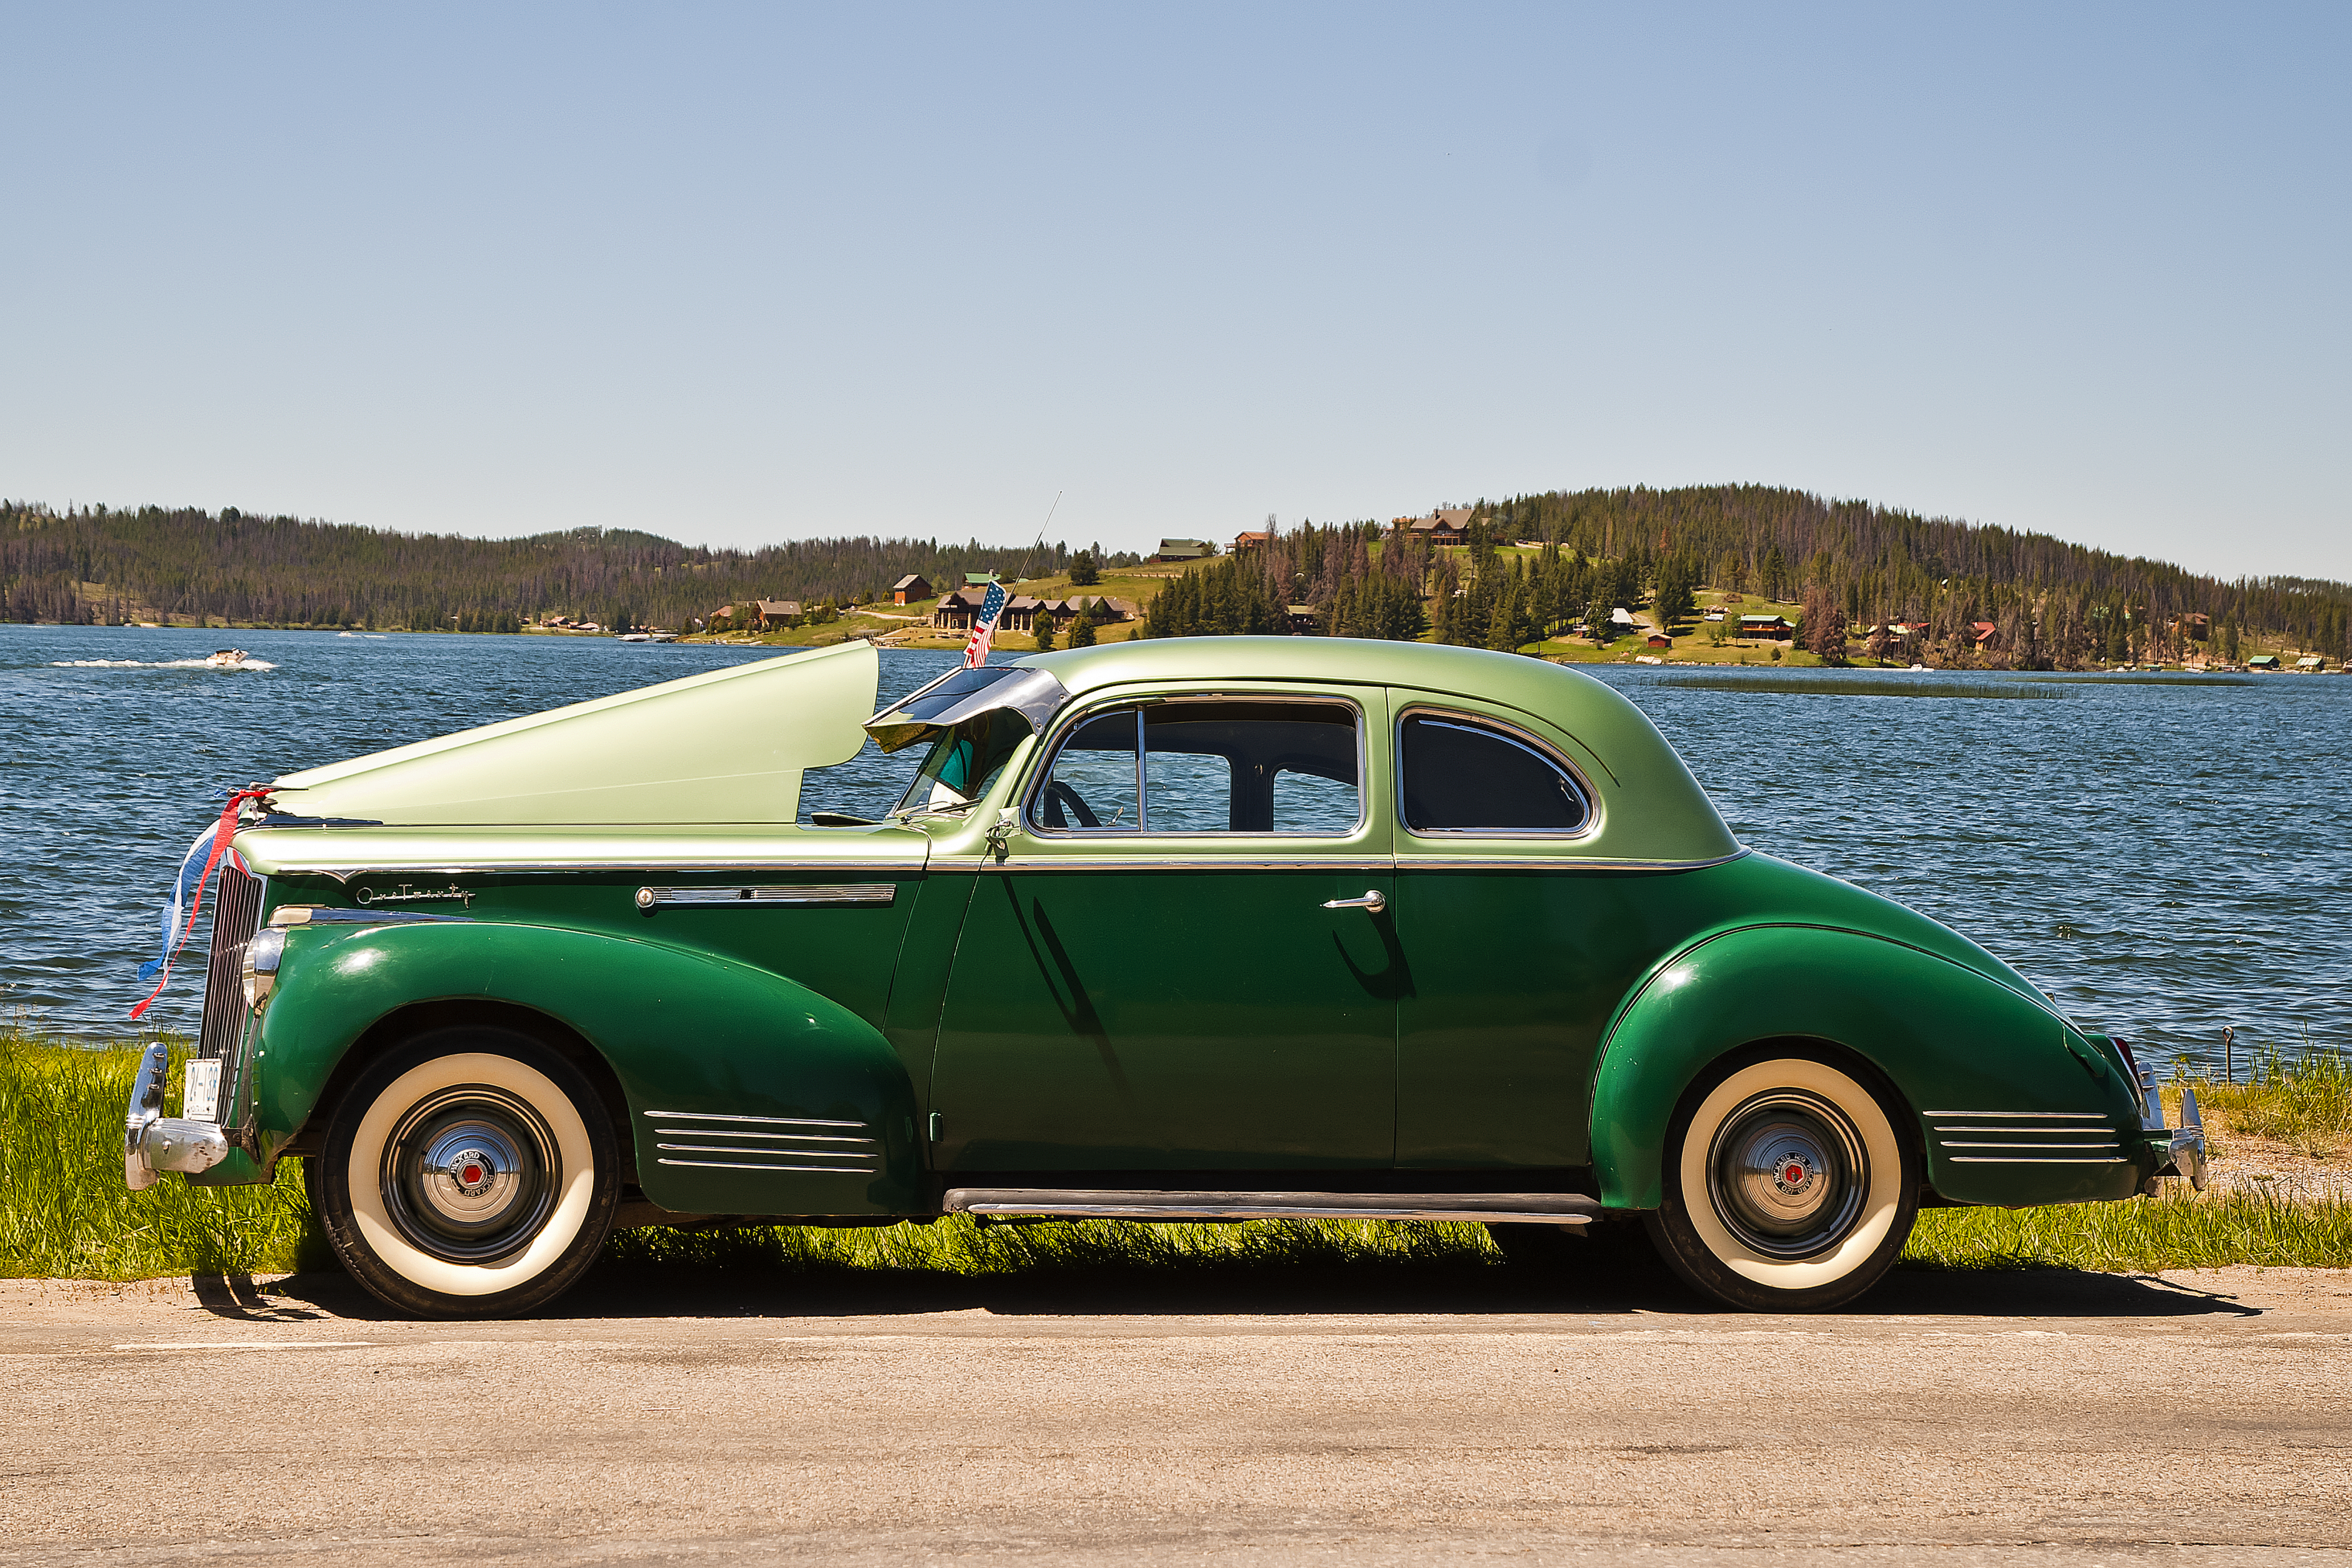 1941 Packard One-Twenty by quintmckown